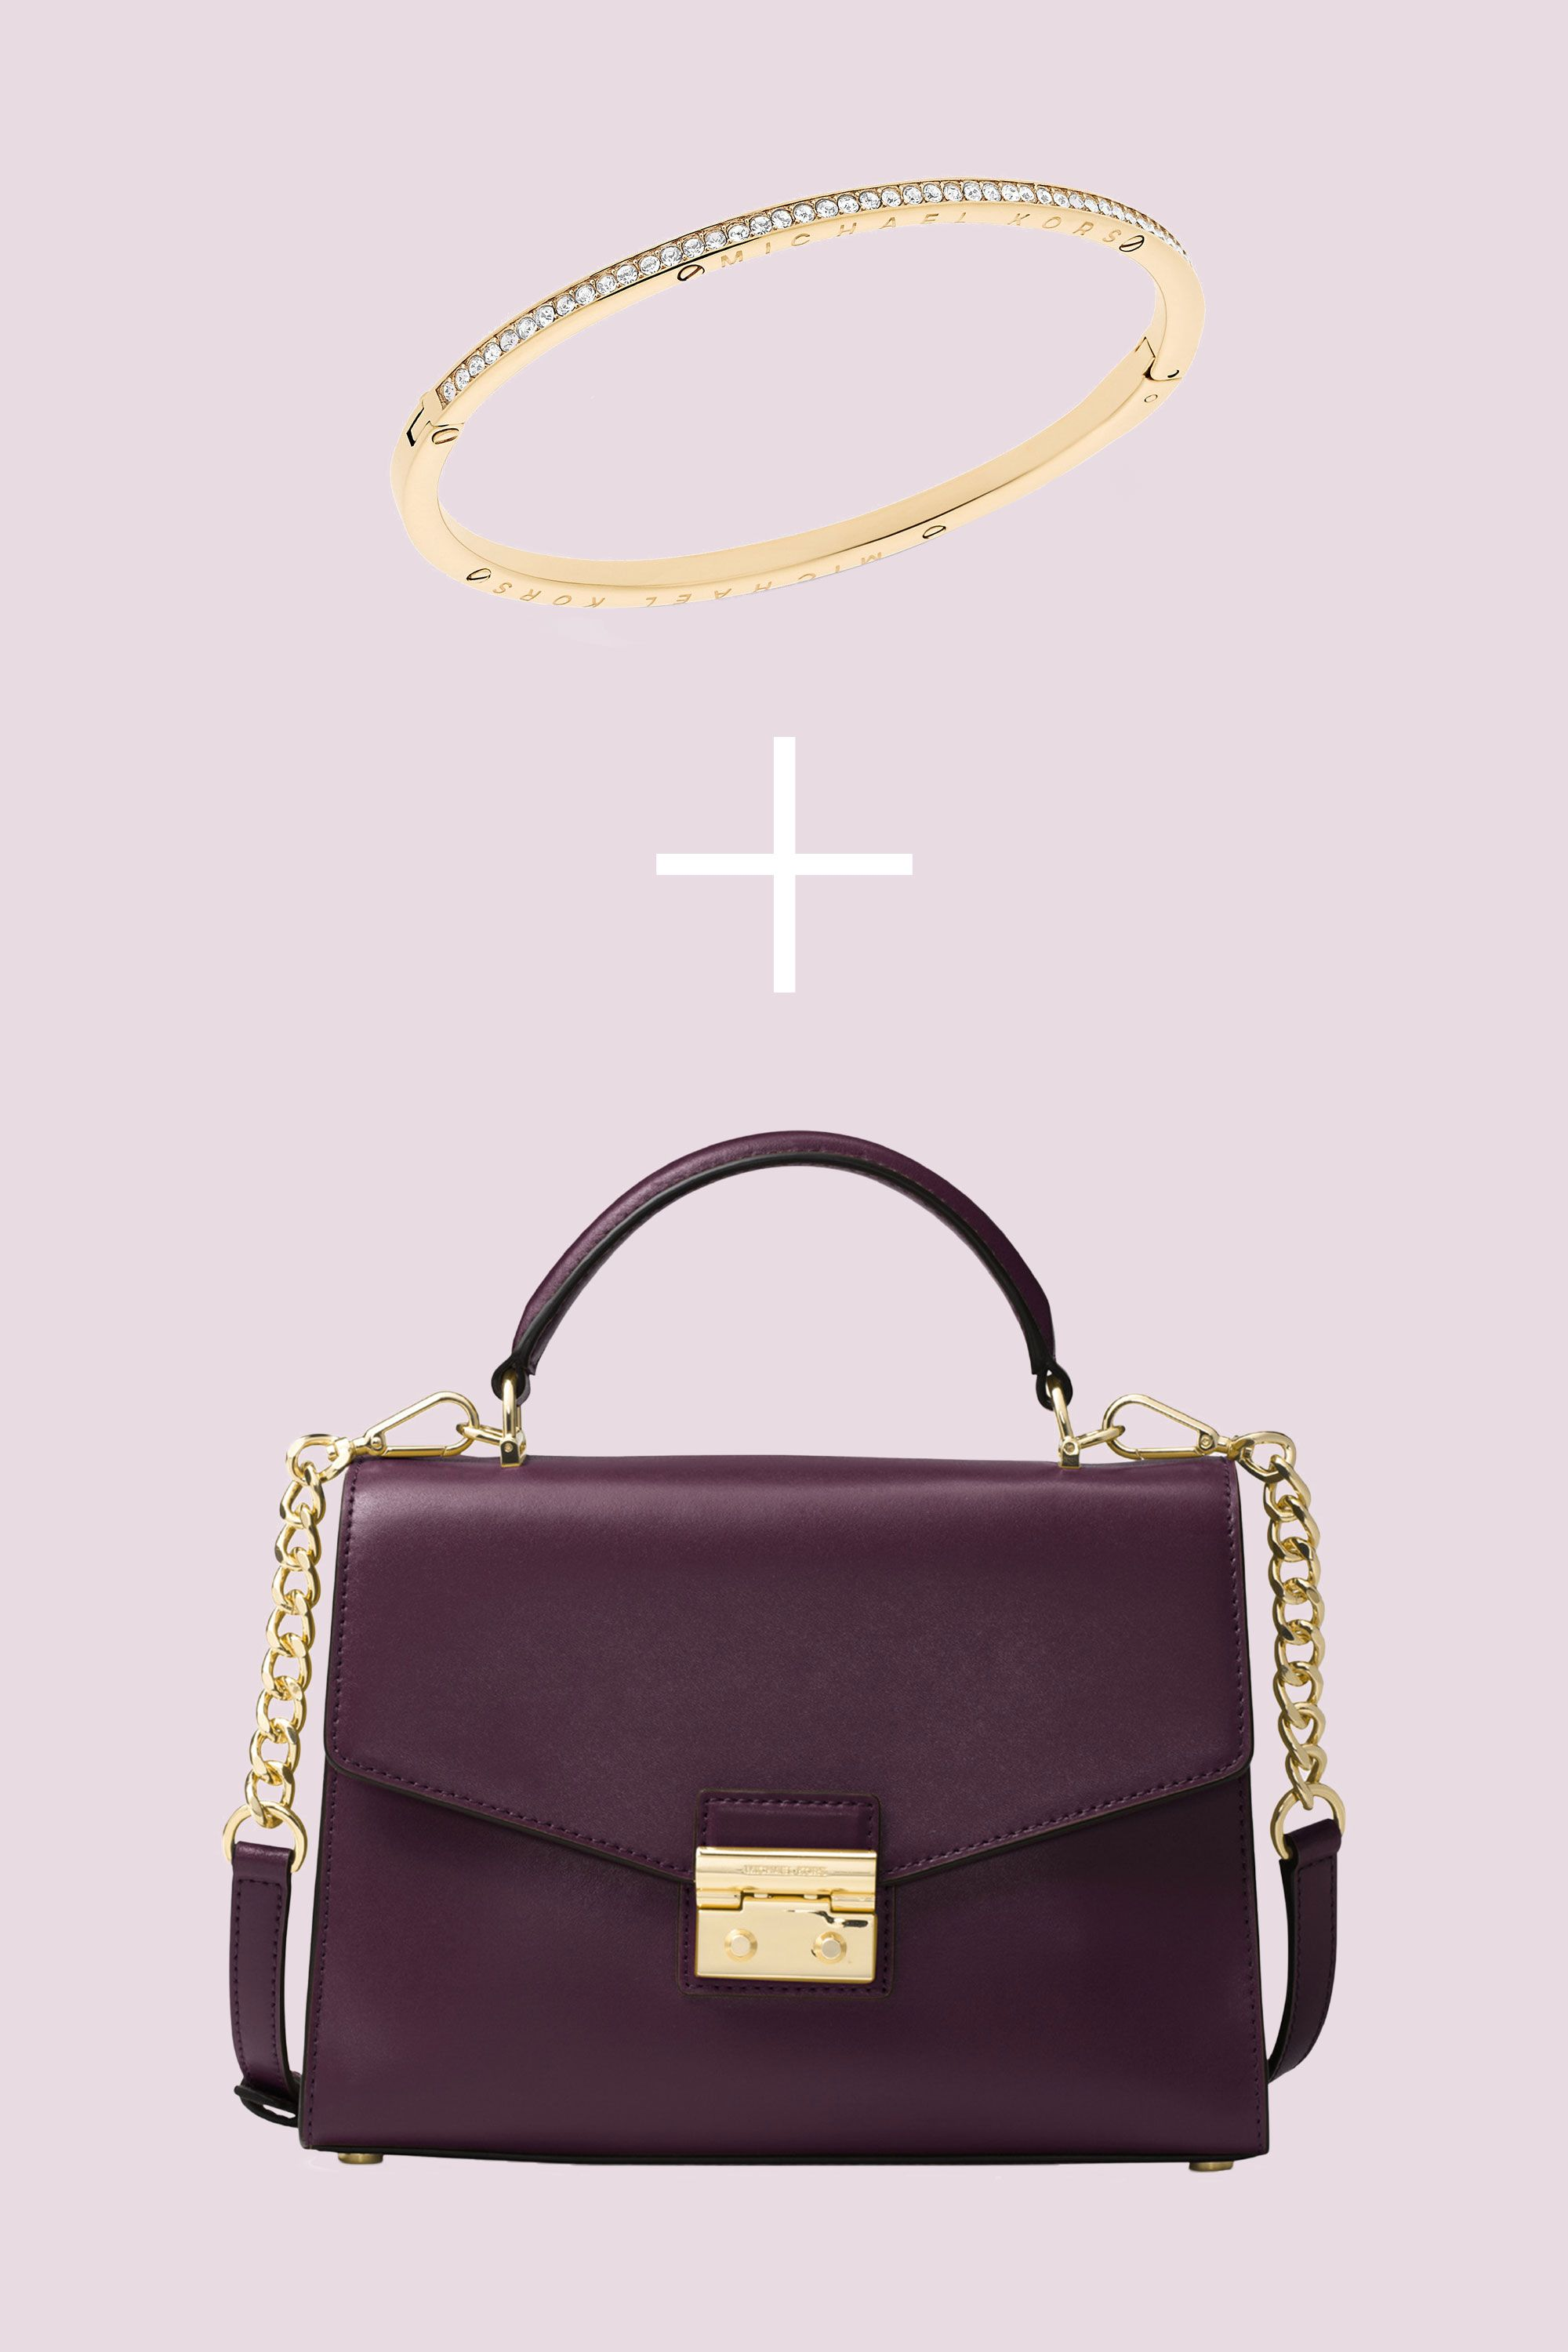 <p>Trade in your basic&nbsp&#x3B;bag for a structured satchel in an unexpected merlot hue. When paired with a sleek&nbsp&#x3B;bangle, the look is sophisticated and elegant—and surprisingly&nbsp&#x3B;versatile, too.